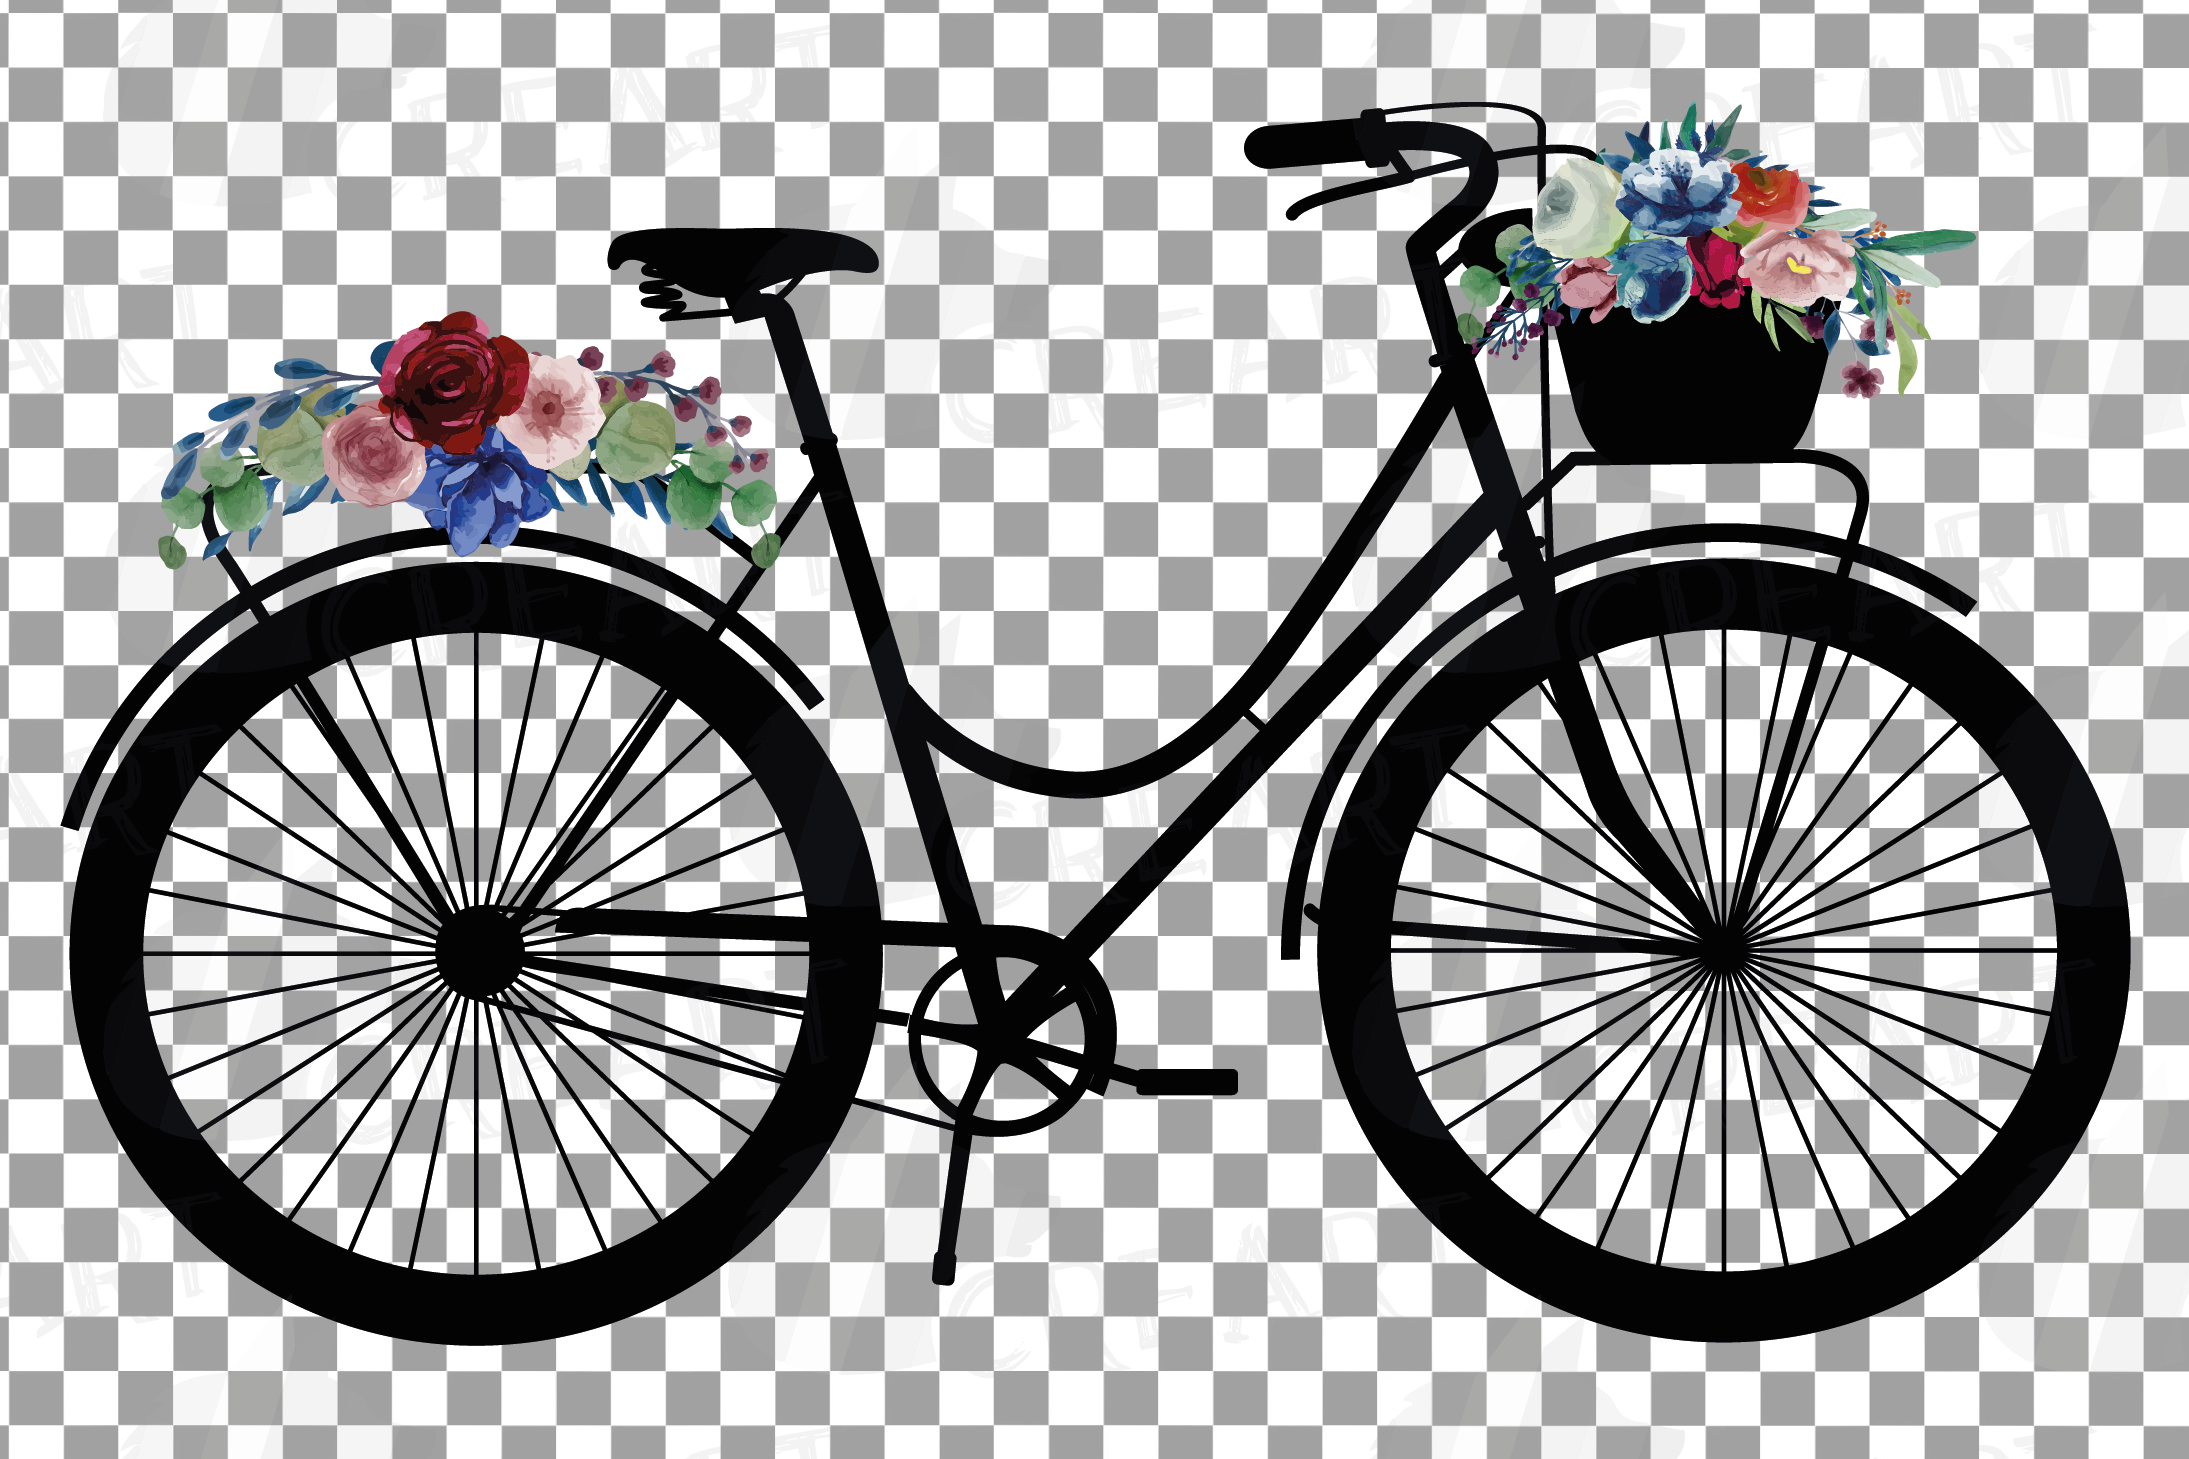 Floral bicycles with watercolor bouquets decoration clip art example image 4